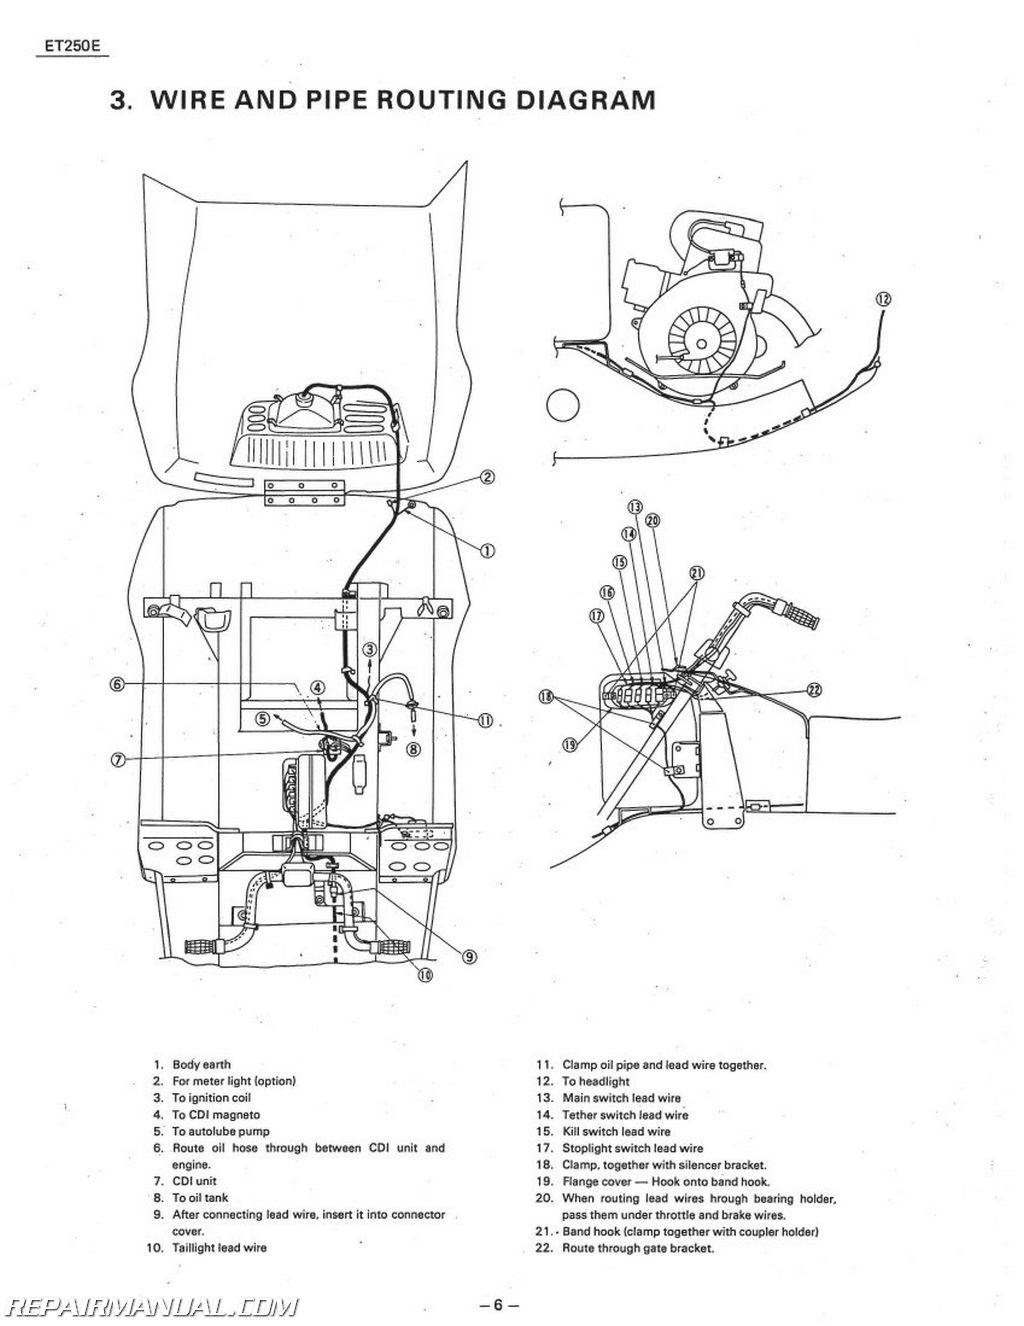 Ebook PDF 1977 Yamaha Enticer 250 Wiring Diagram